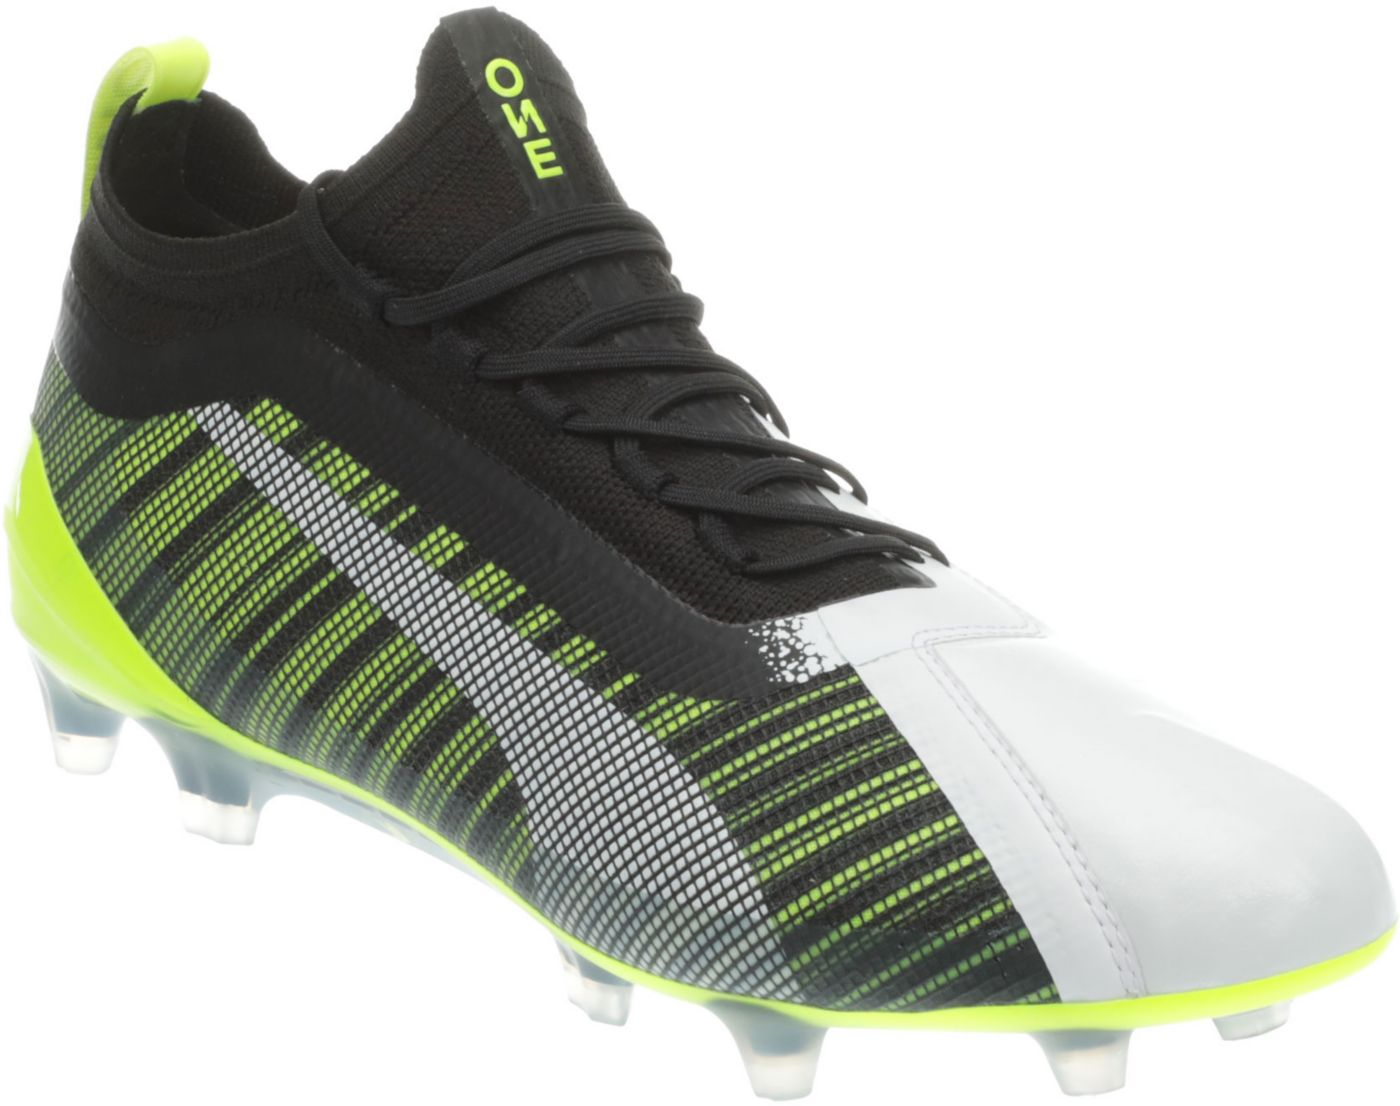 PUMA Men's ONE 5.1 FG/AG Soccer Cleats